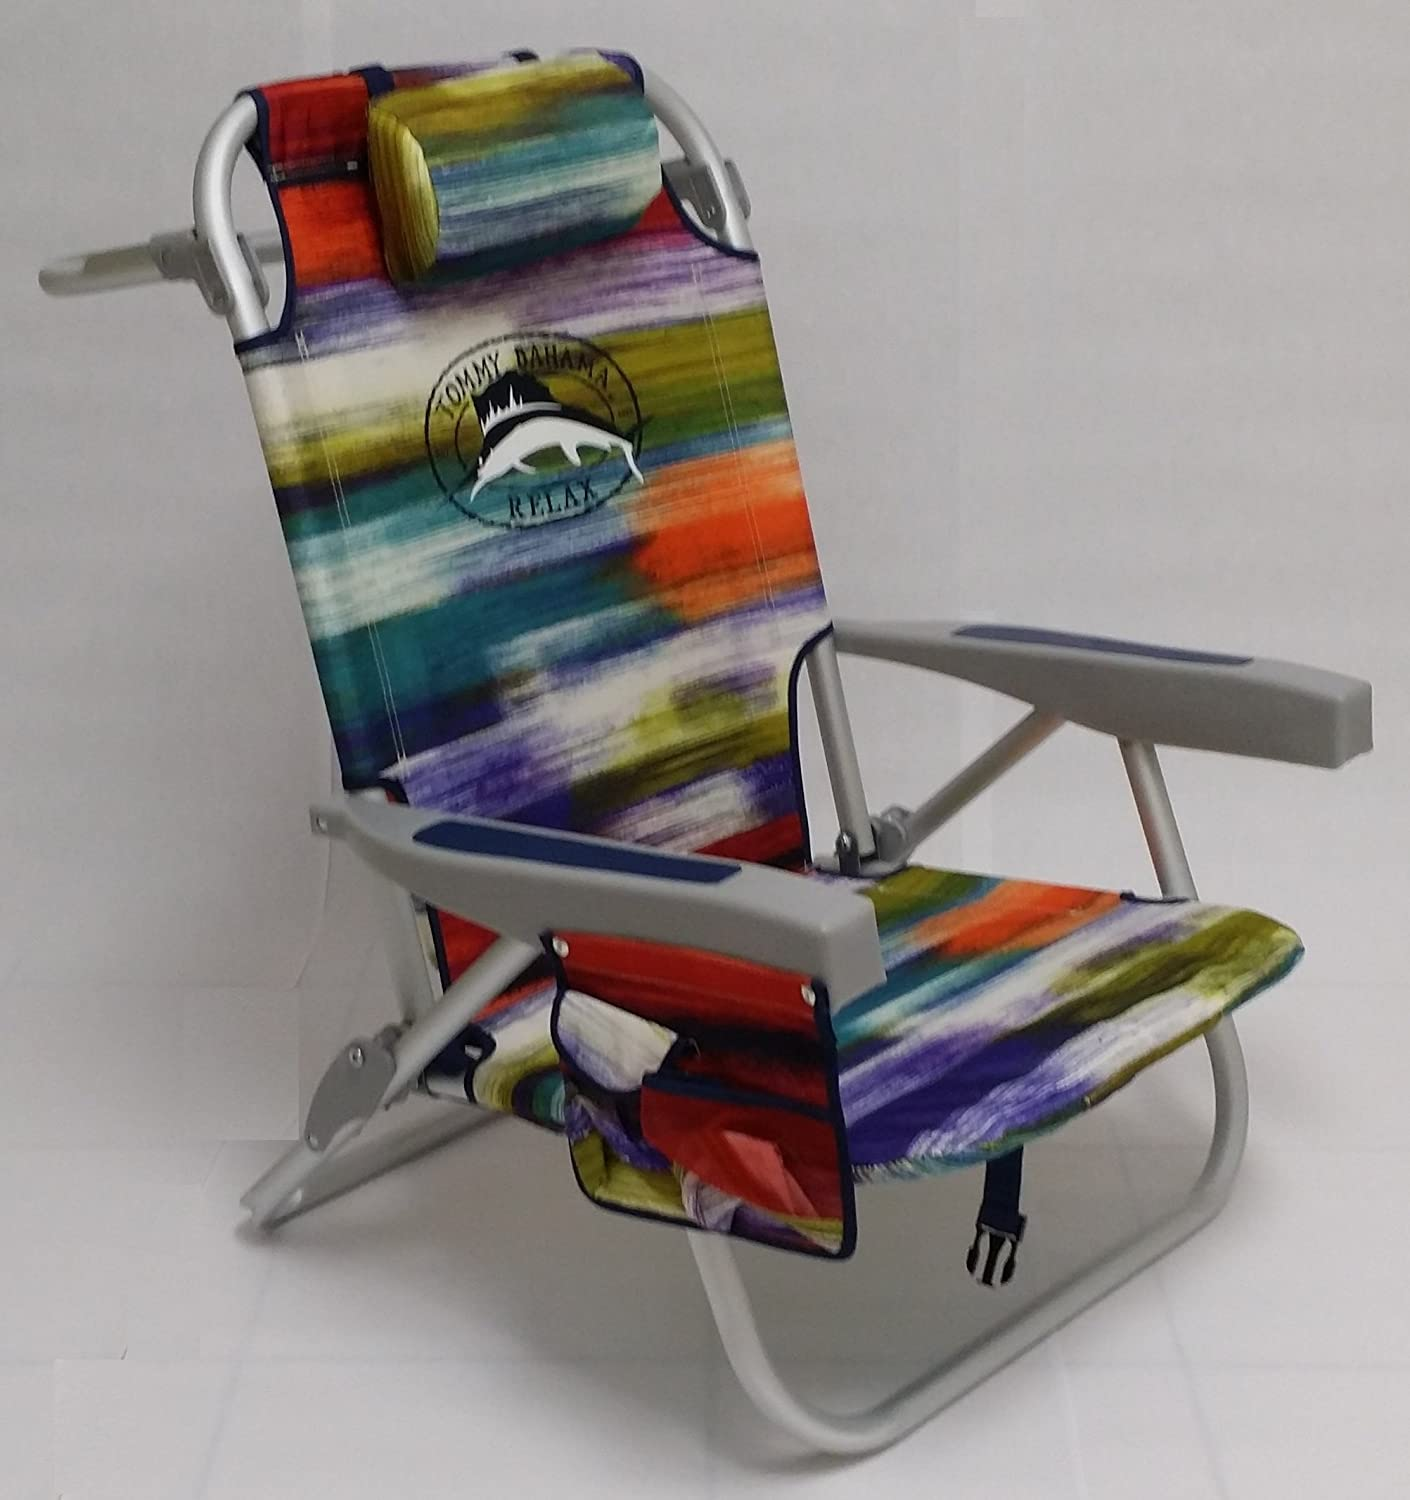 Tommy Bahama 2015 Backpack Cooler Chair with Storage Pouch and Towel Bar- multicolor